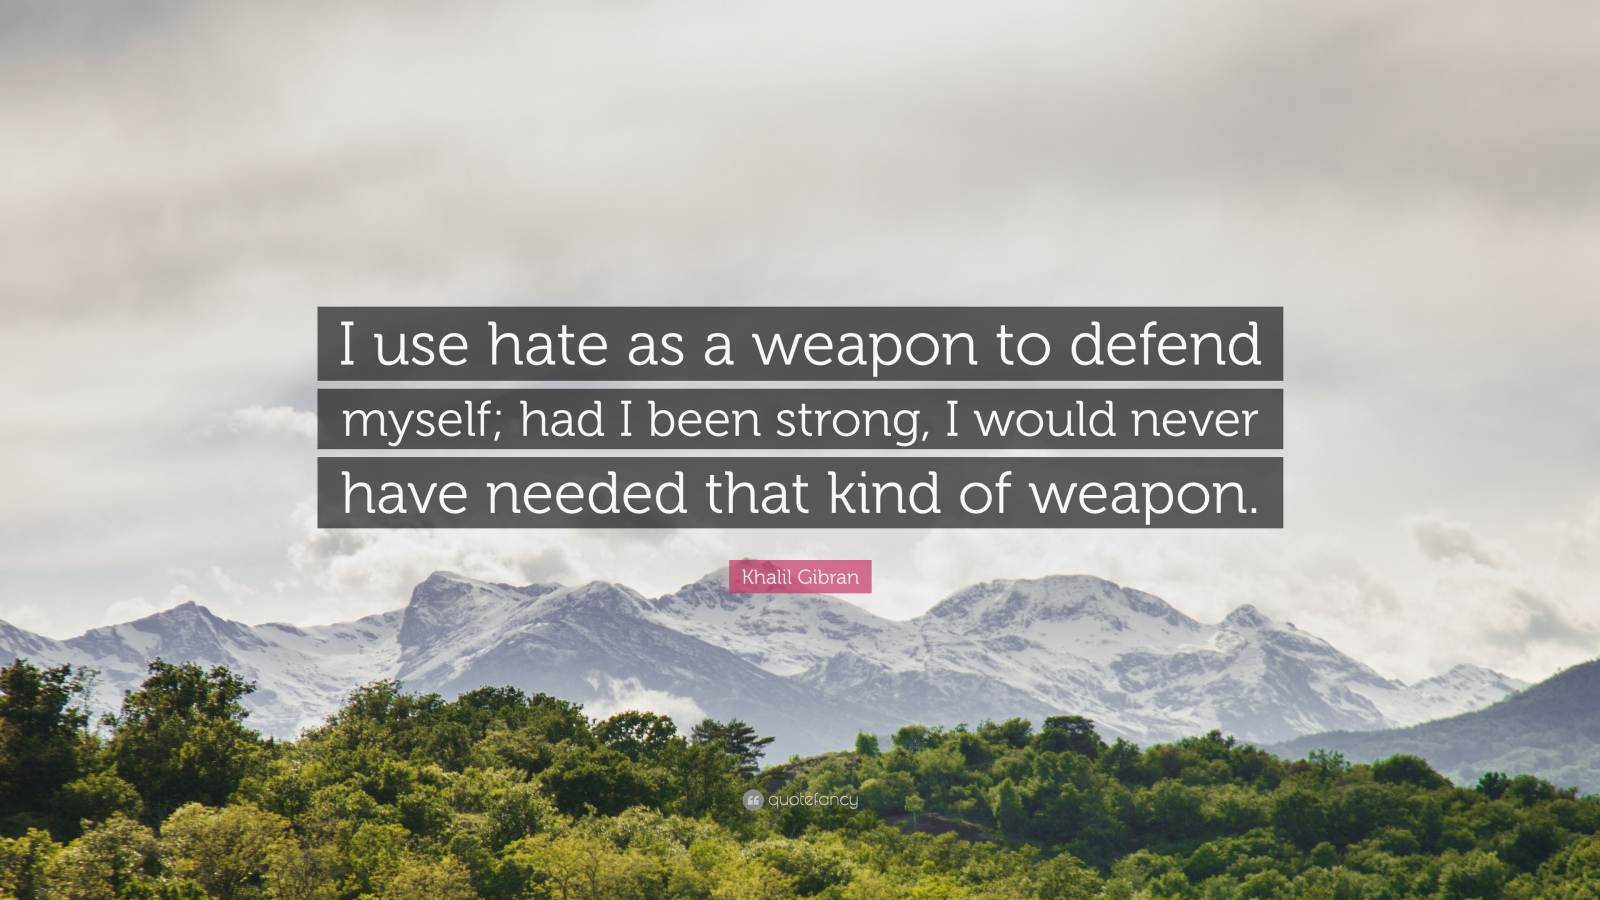 101669-Khalil-Gibran-Quote-I-use-hate-as-a-weapon-to-defend-myself-had-I